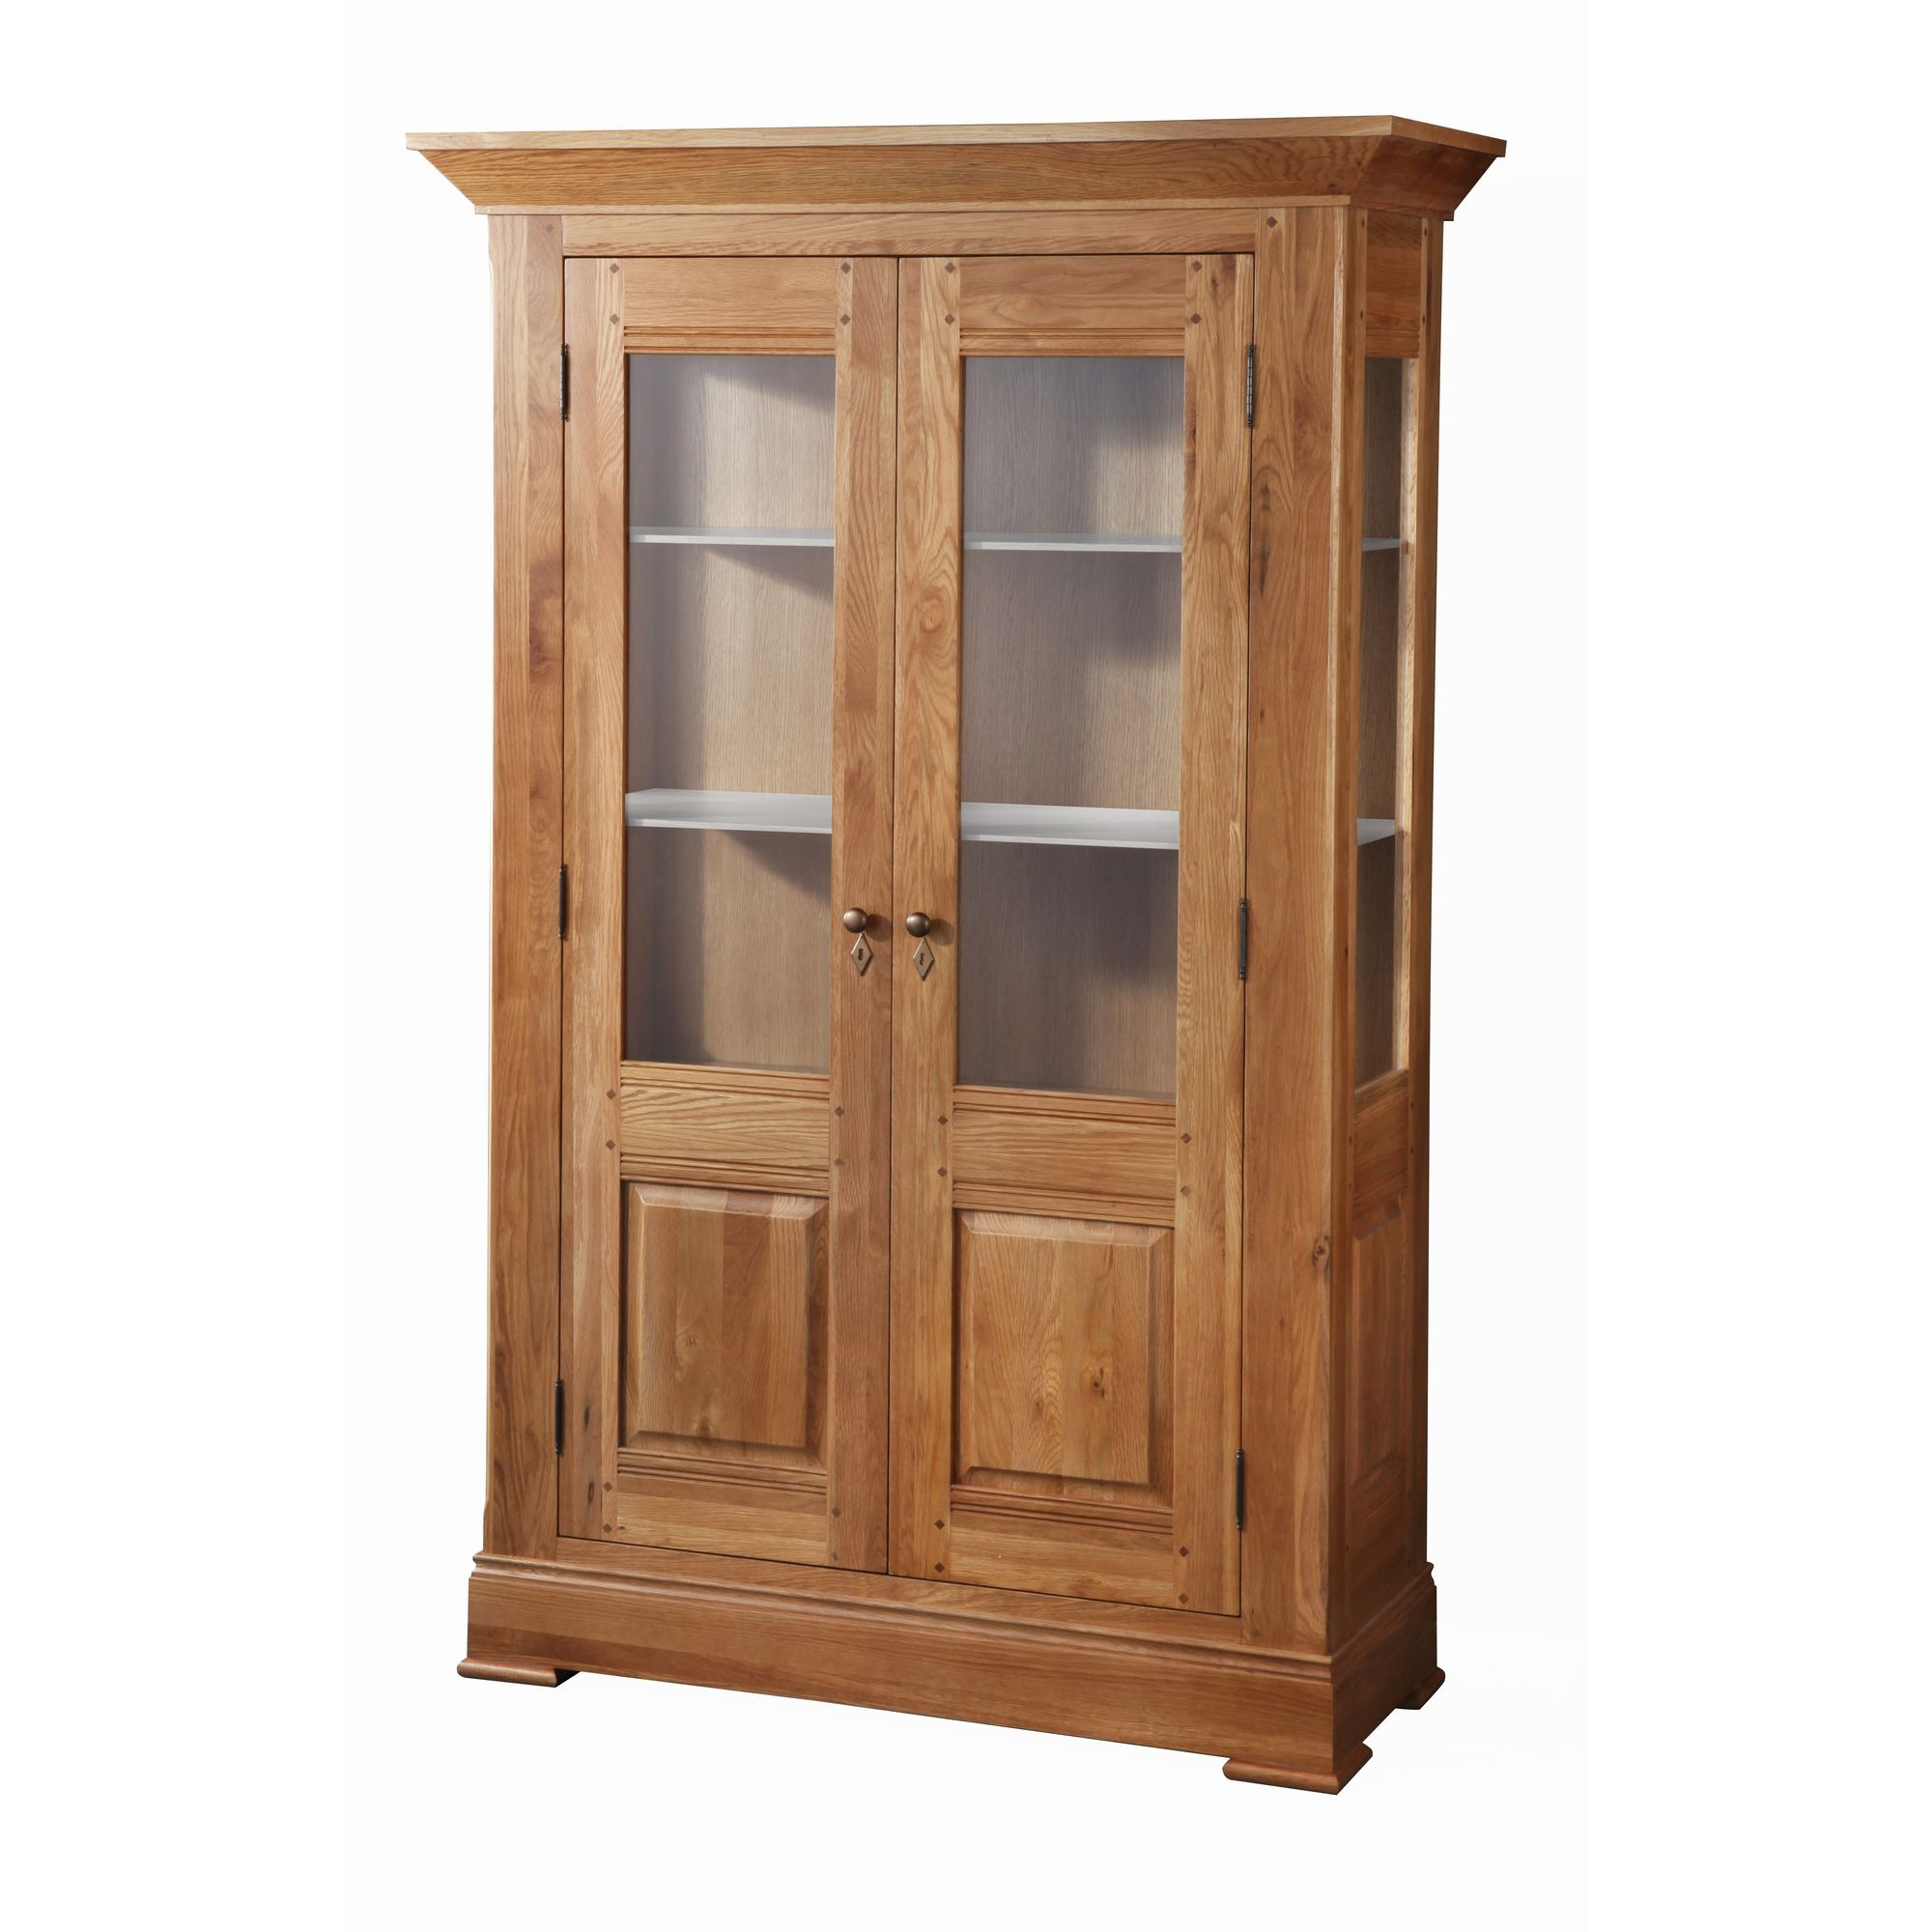 Wilkinson Furniture Normandy Display Cabinet in Lacquer at Tesco Direct